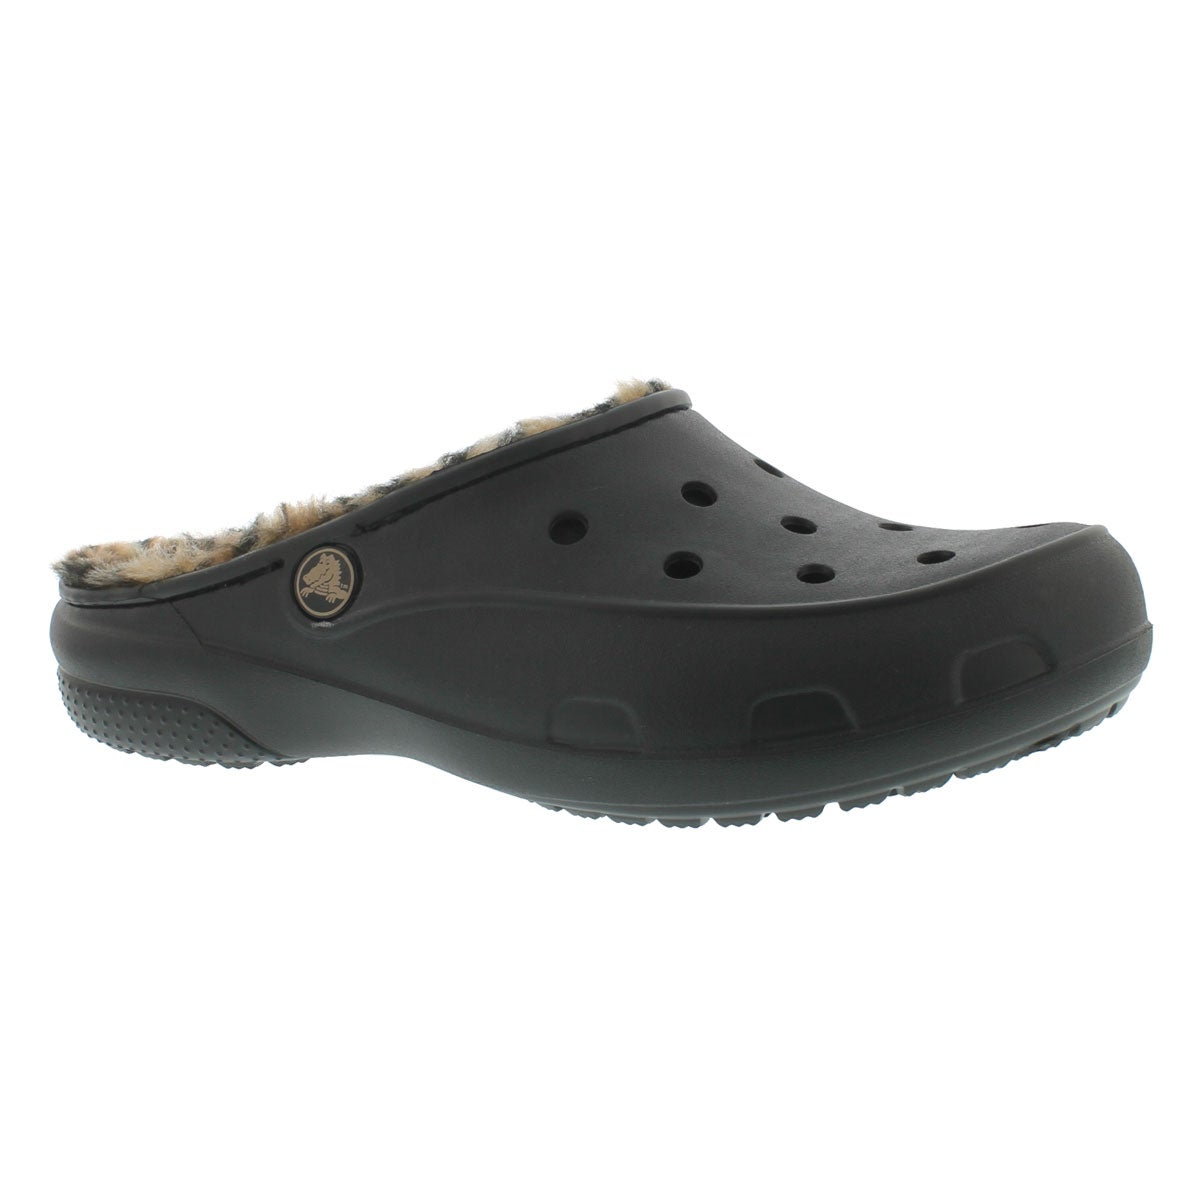 Women's Freesail lined black/gold casual clogs